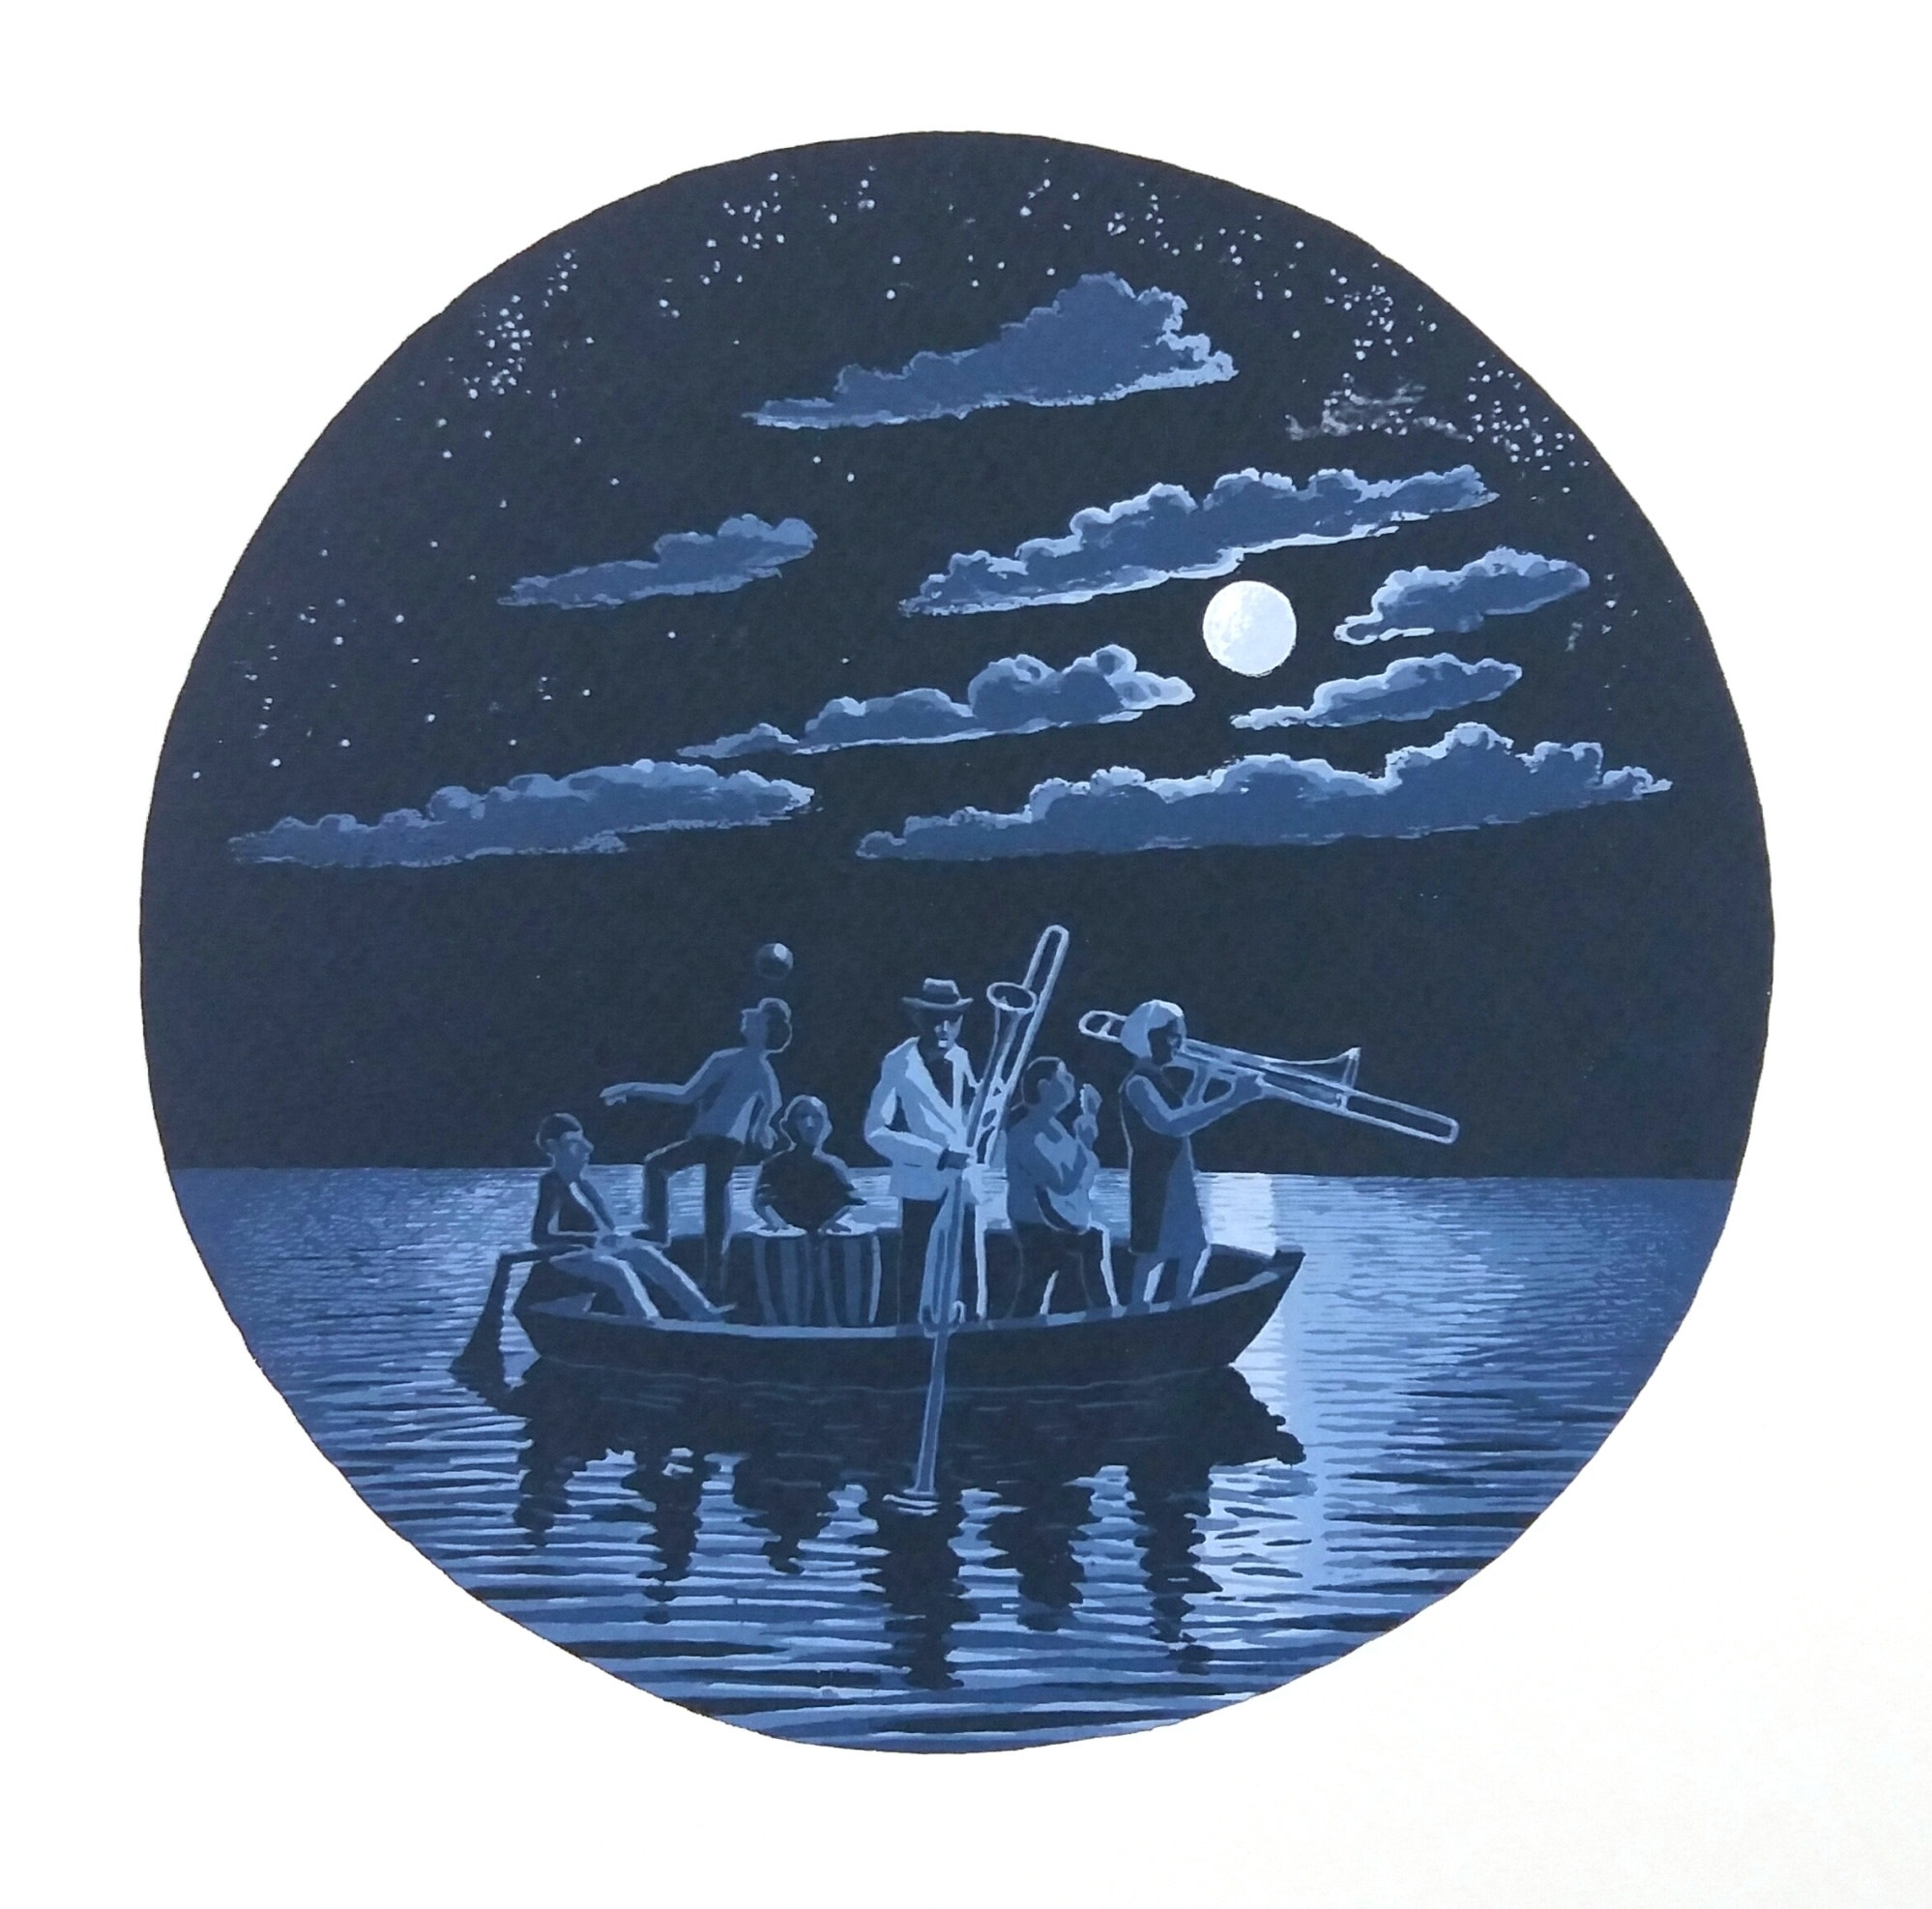 "<span class=""link fancybox-details-link""><a href=""/exhibitions/17/works/image_standalone692/"">View Detail Page</a></span><p><strong>Martin Grover</strong></p><p>The Univited Guests (Night Boat to Sorrow)</p><p>screenprint, ed of 21</p><p>39 x 39cm</p><p>£280 framed</p><p>£210 unframed</p><p> </p>"